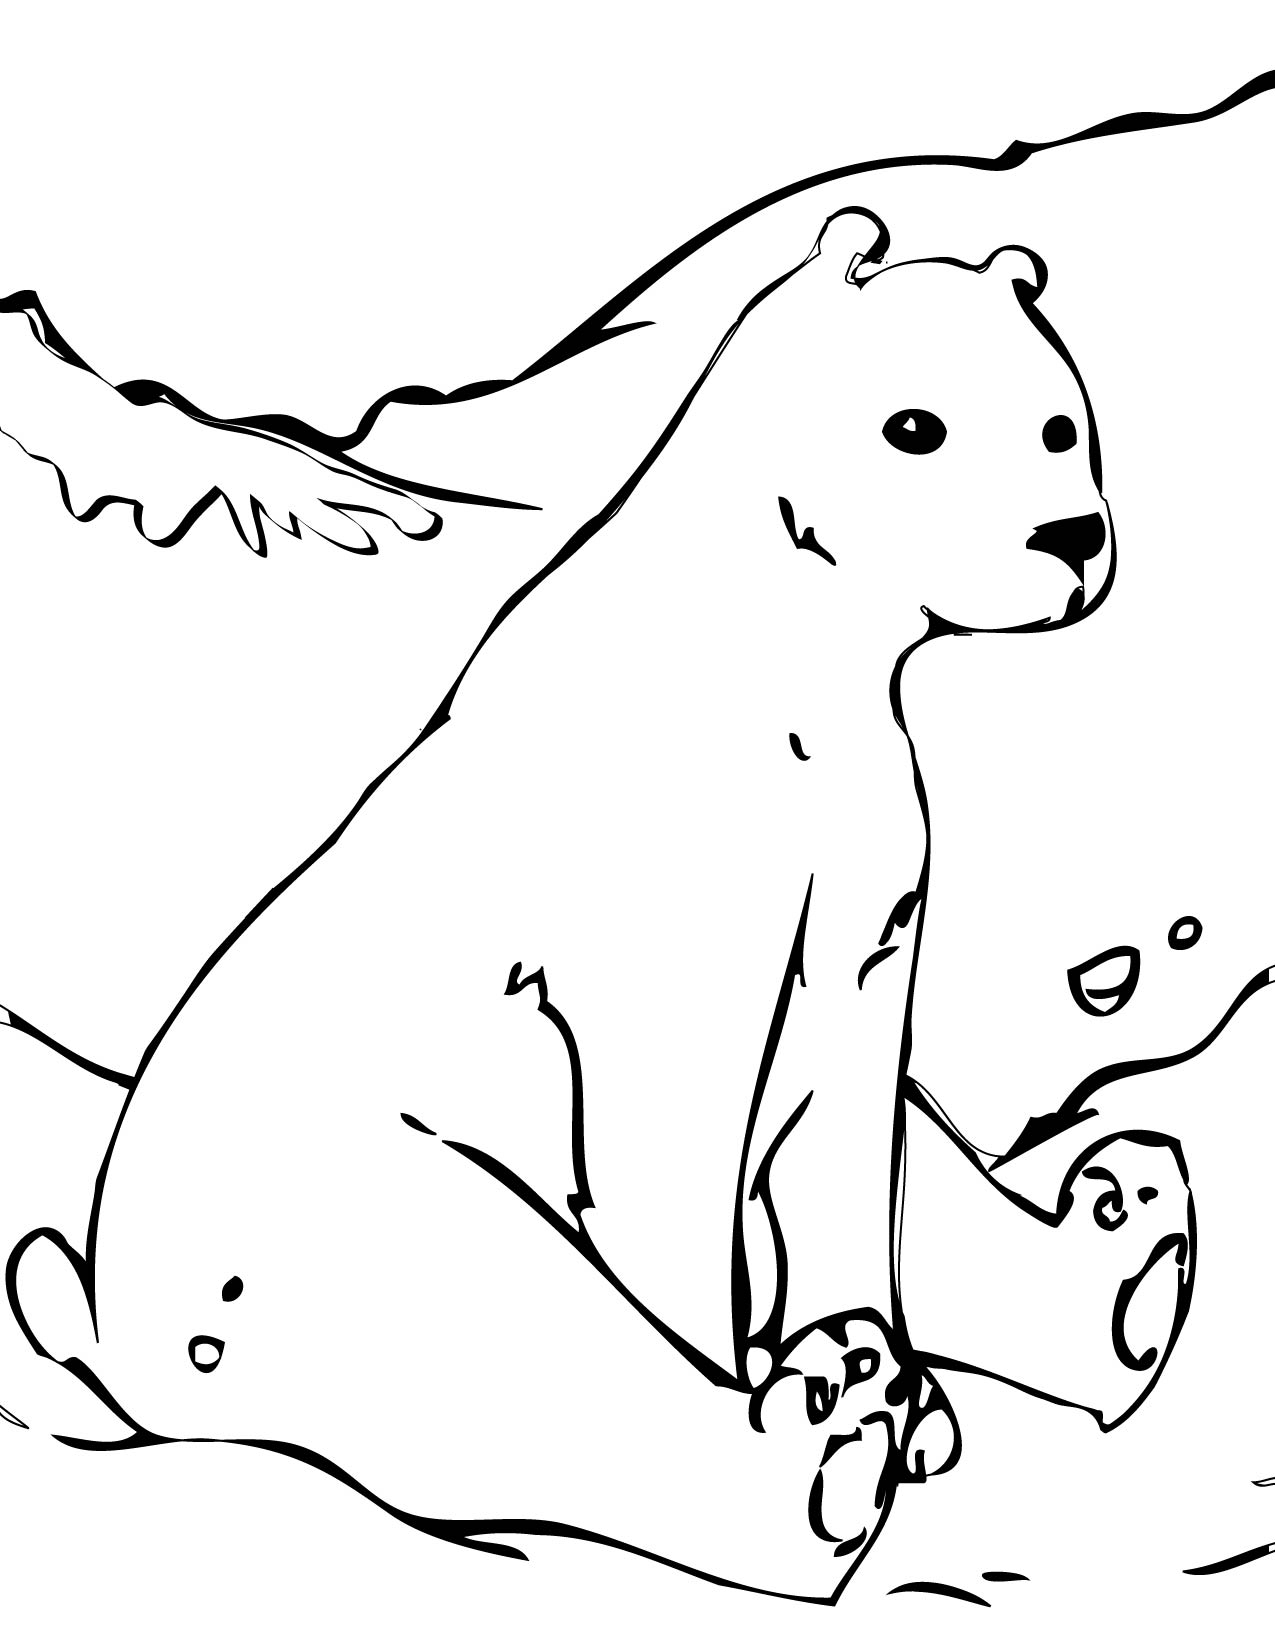 Coloring Pages Baby Polar Bear Coloring Pages free printable polar bear coloring pages for kids images